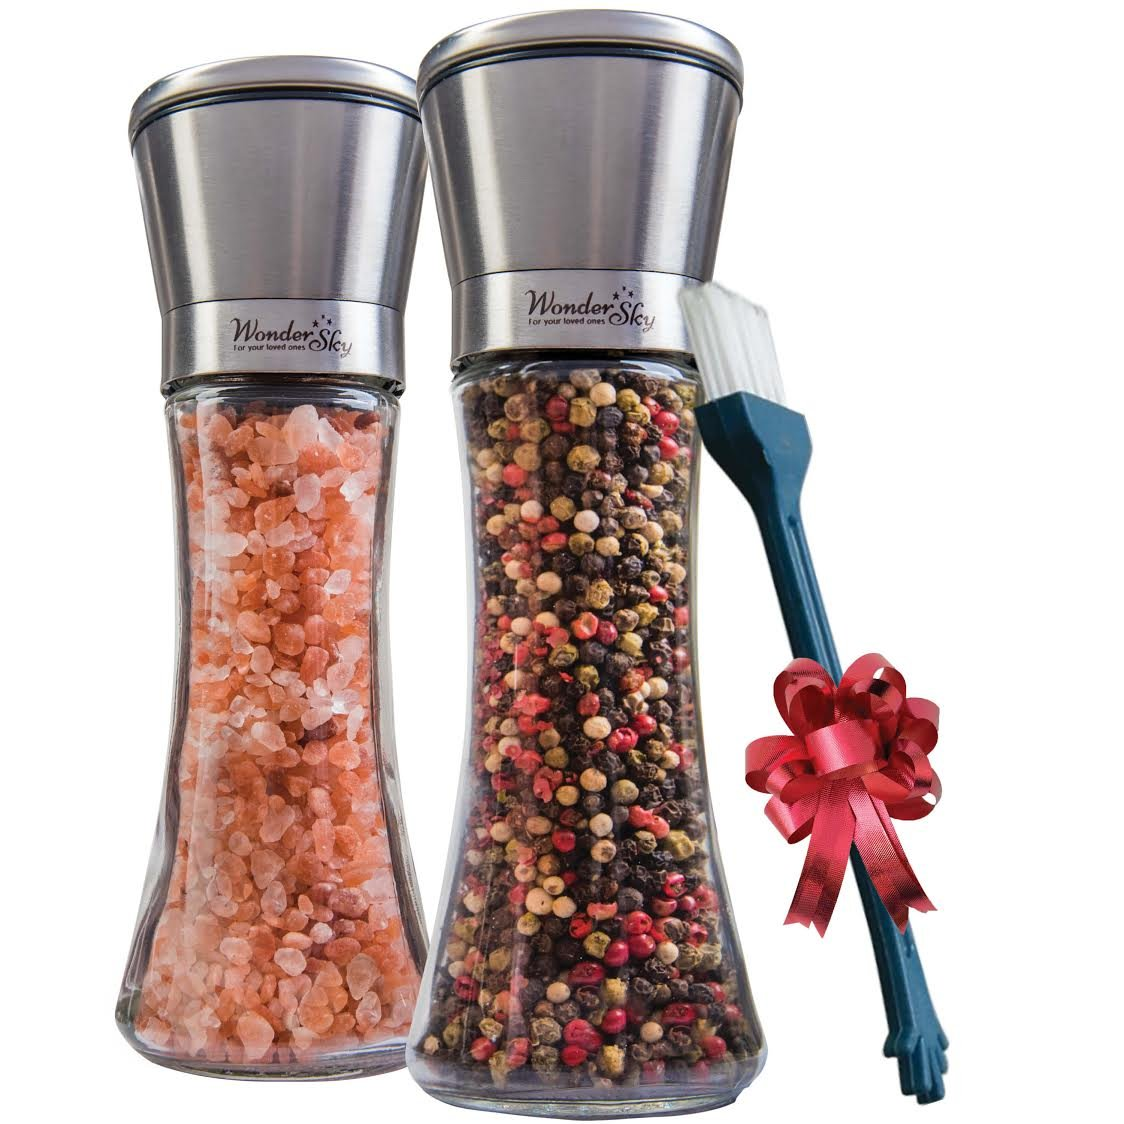 Salt and Pepper Grinder Set of 2 - Tall Salt and Pepper Shakers with Adjustable Coarseness by Ceramic Rotor - Stainless Steel Pepper Mill Shaker and Salt Grinders Mills Set with FREE Cleaning Brush by Wonder Sky